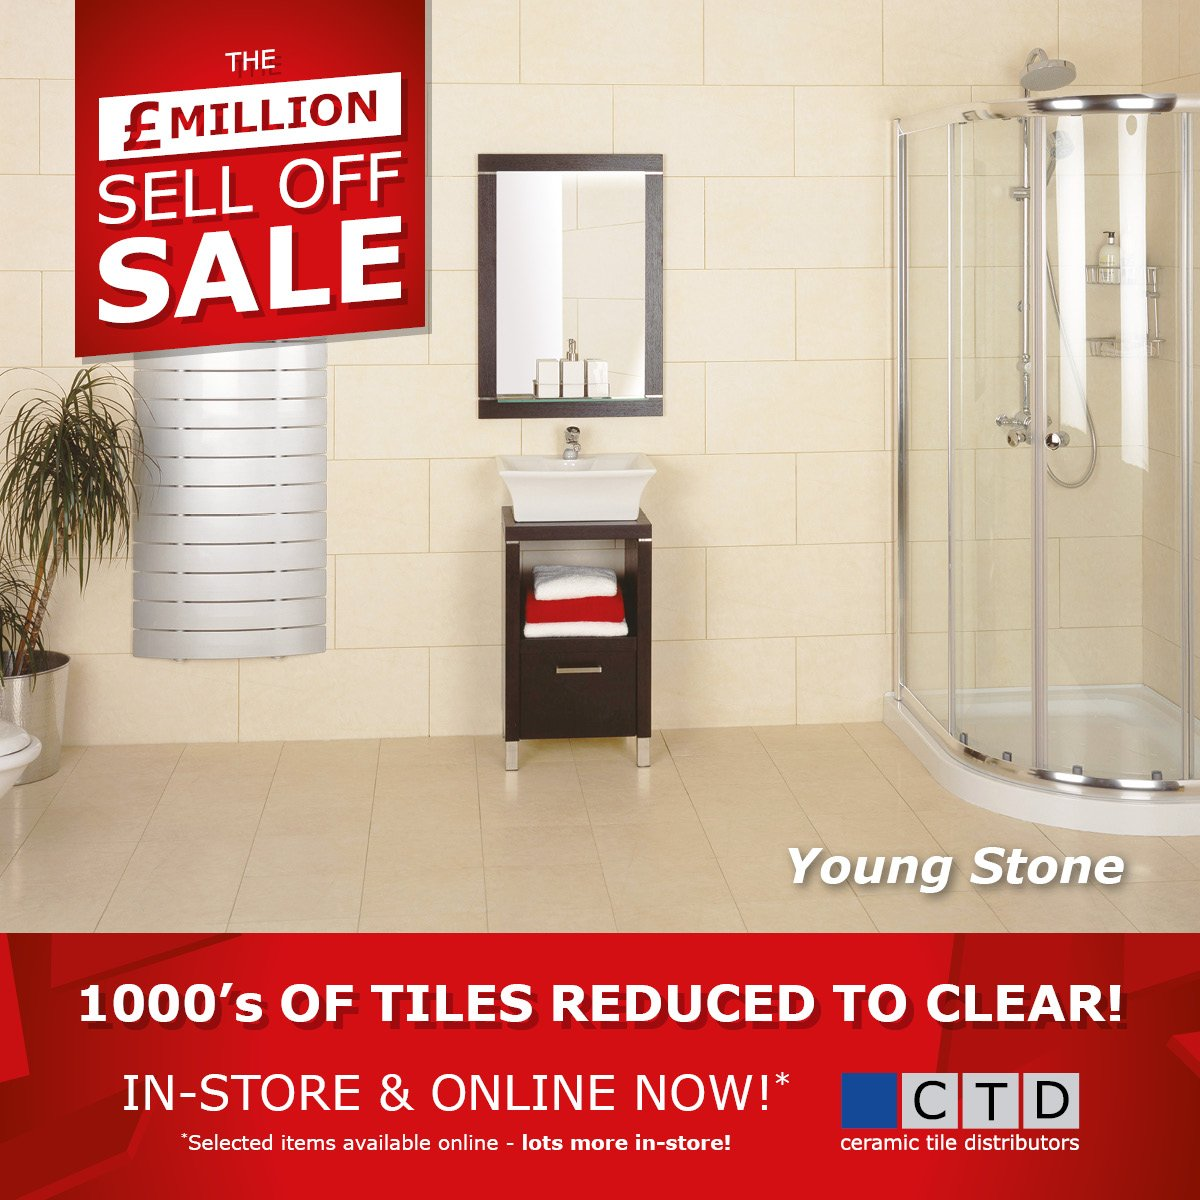 Ceramic tile distributors aberdeen columbialabelsfo ctd tiles ctdtiles twitter dailygadgetfo Images